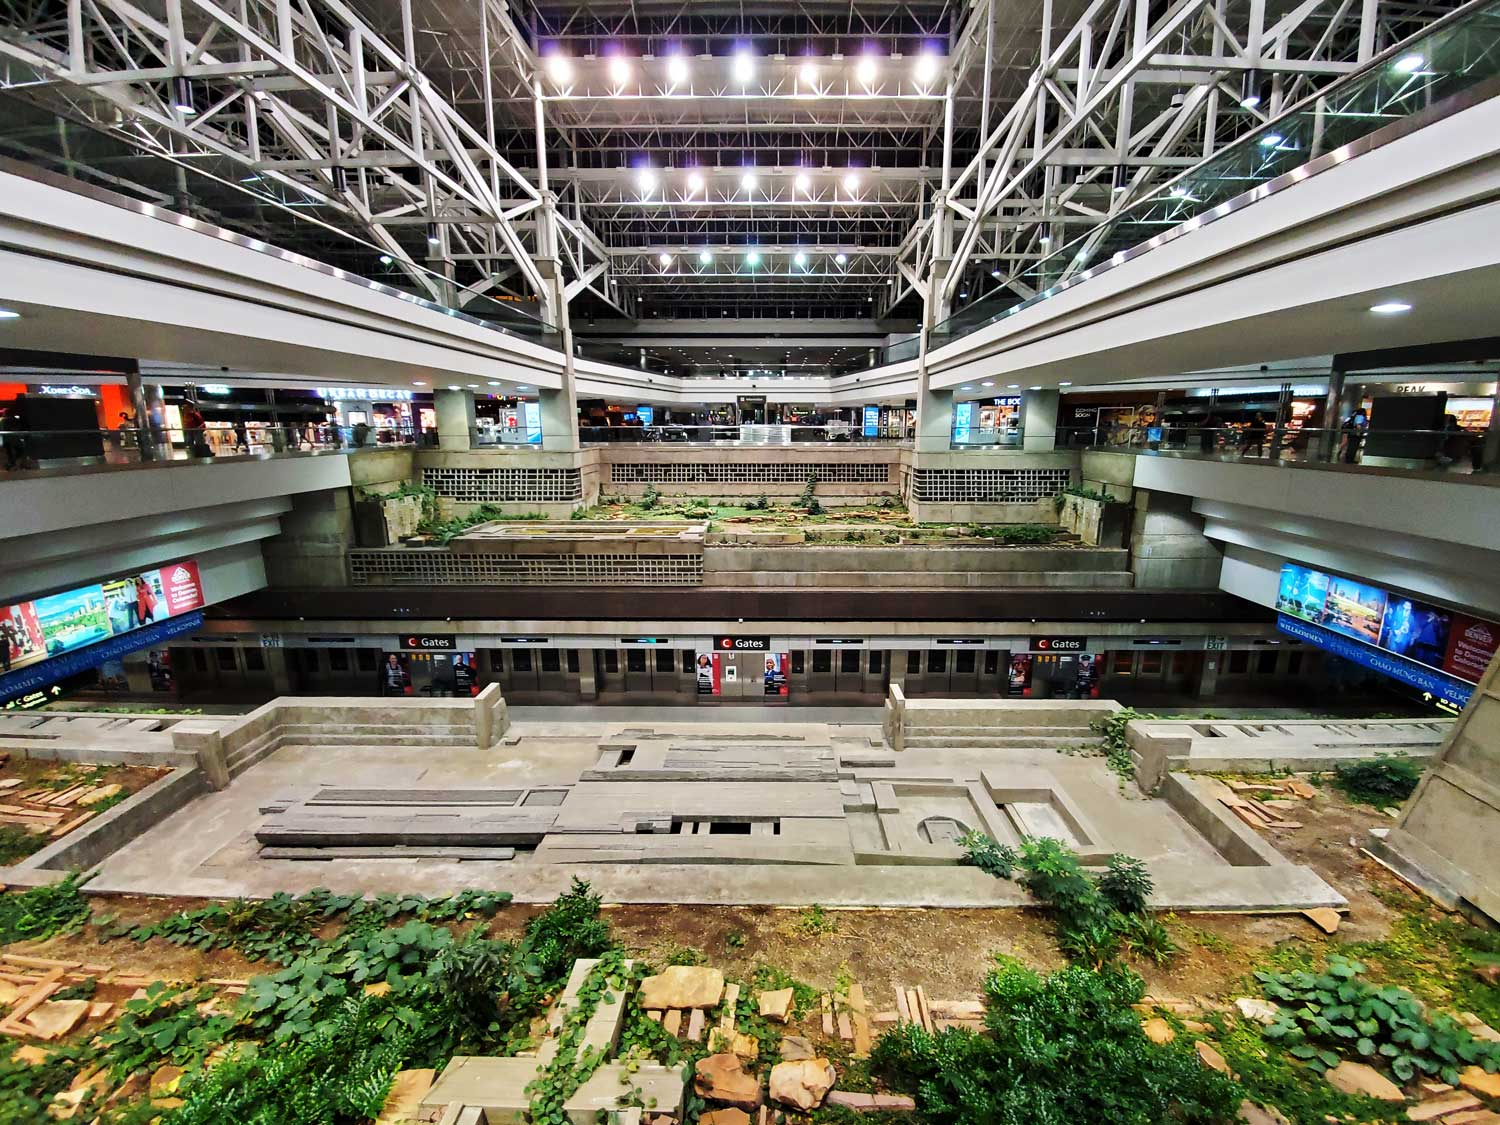 pct-day-94-airport.jpg